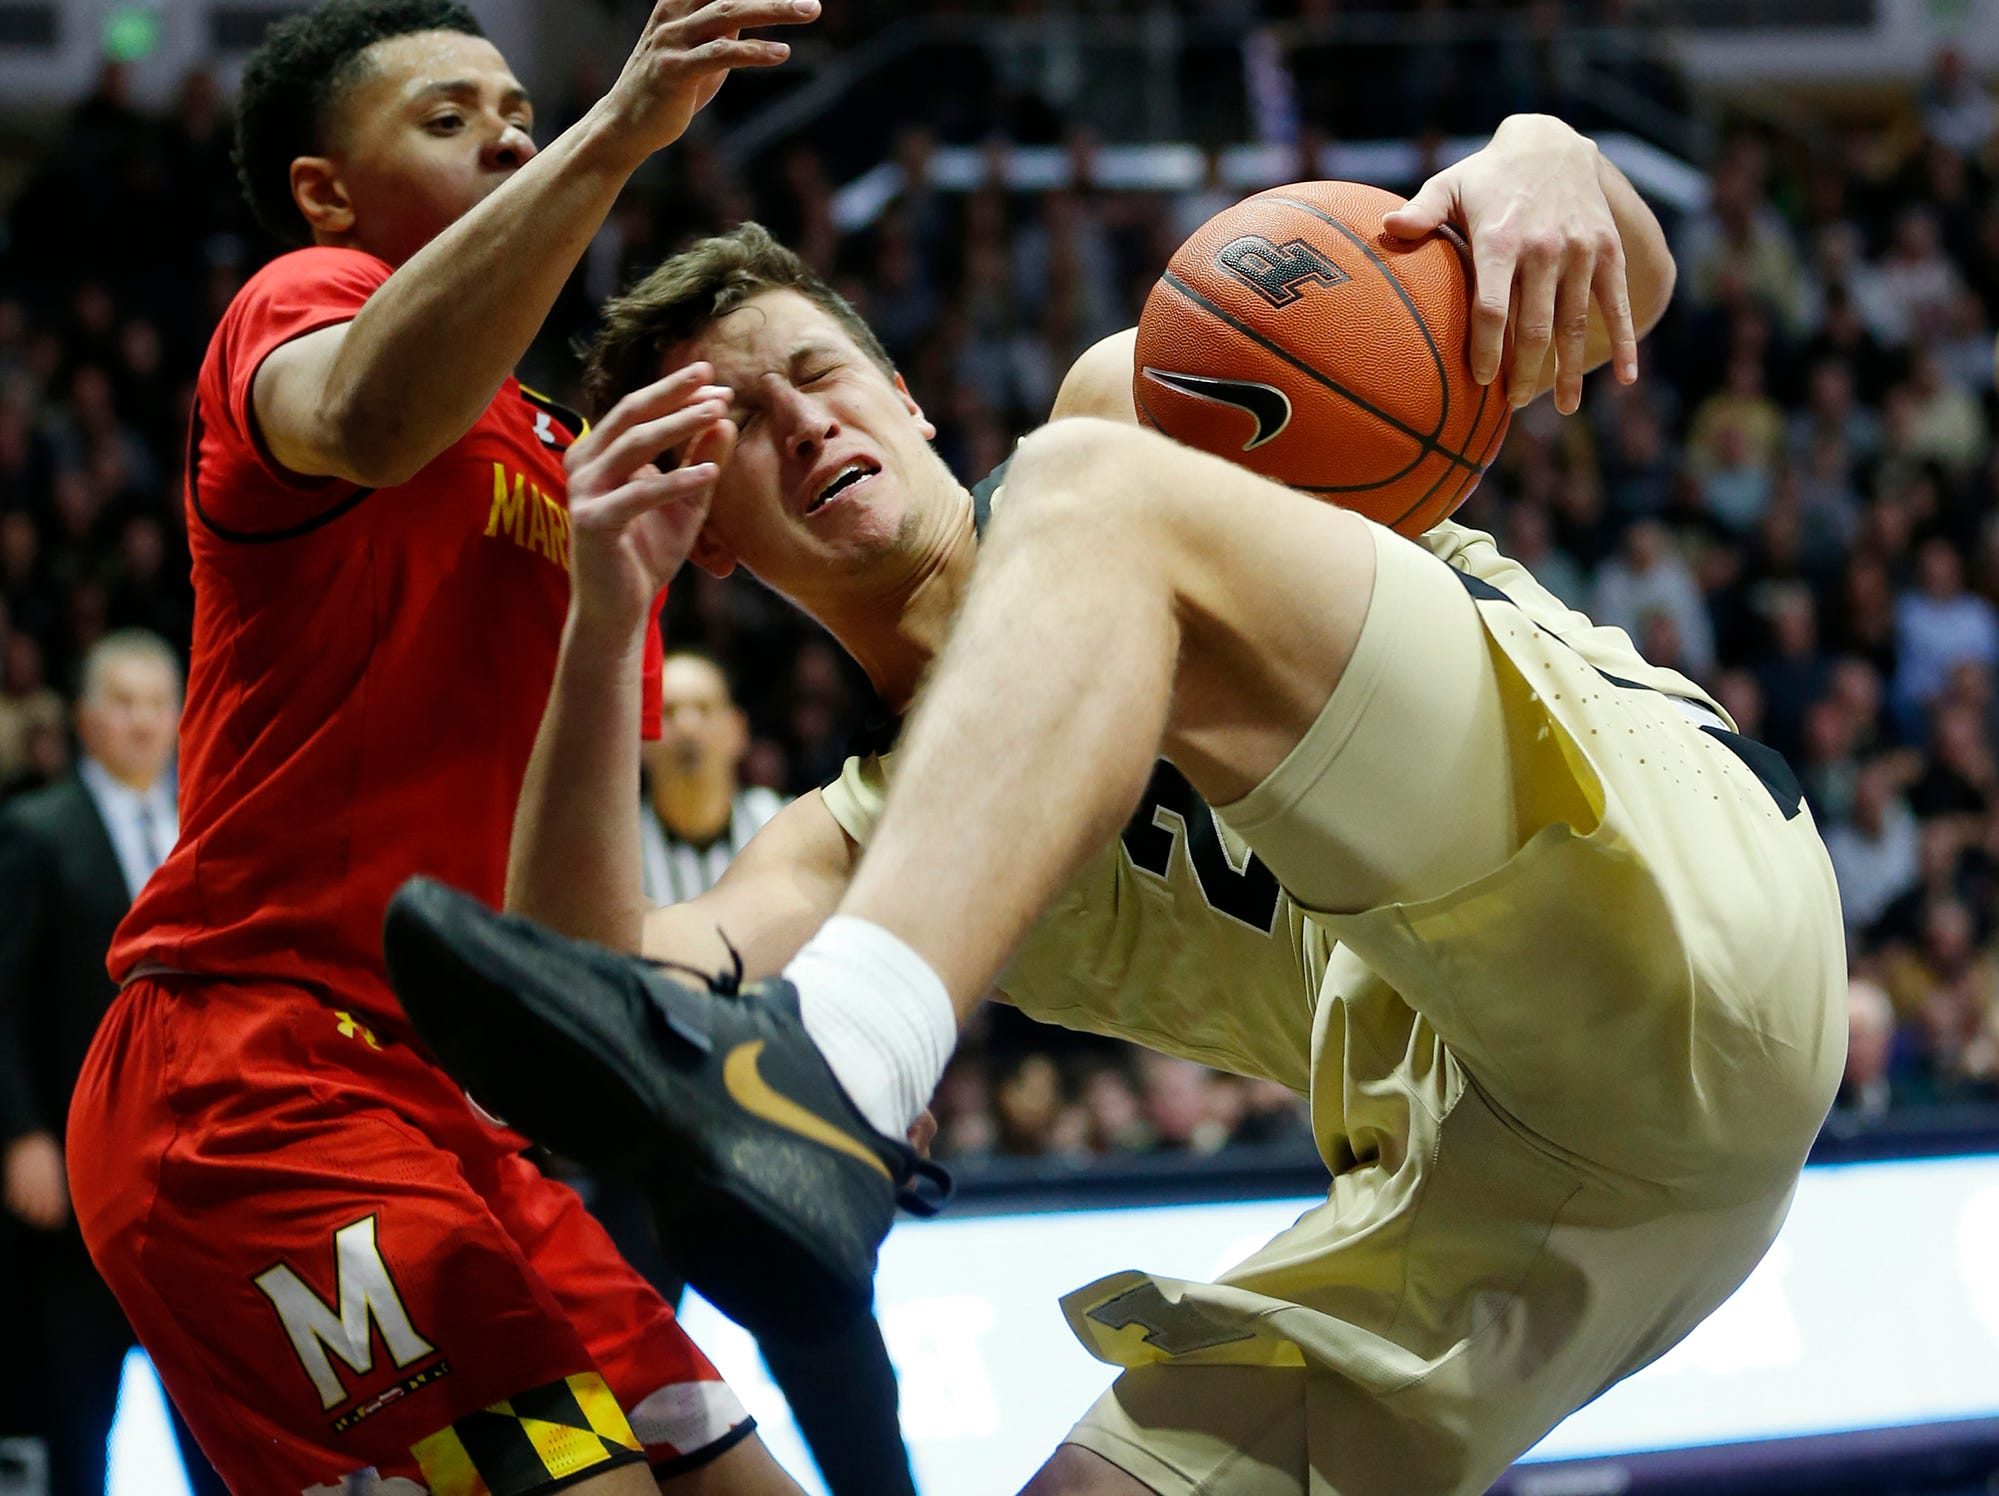 Grady Eifert pulls down an offensive rebound against Maryland Thursday, December 6, 2018, at Mackey Arena. Purdue defeated Maryland 62-60.